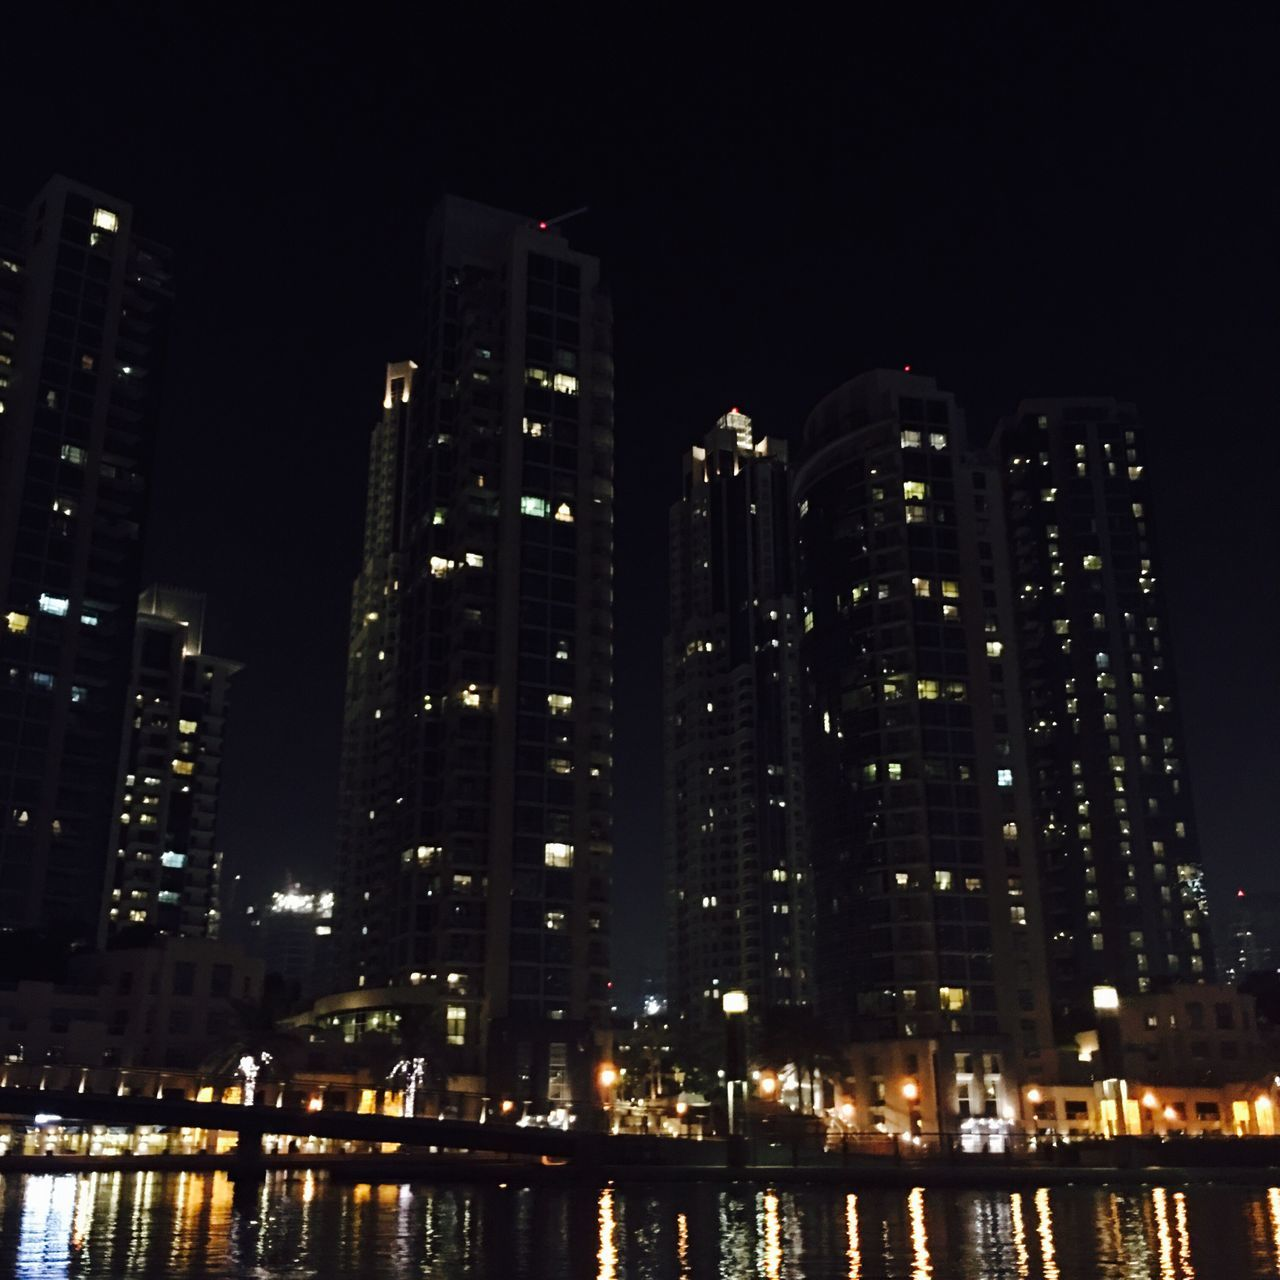 illuminated, night, architecture, building exterior, skyscraper, built structure, city, modern, no people, cityscape, low angle view, tall, outdoors, sky, water